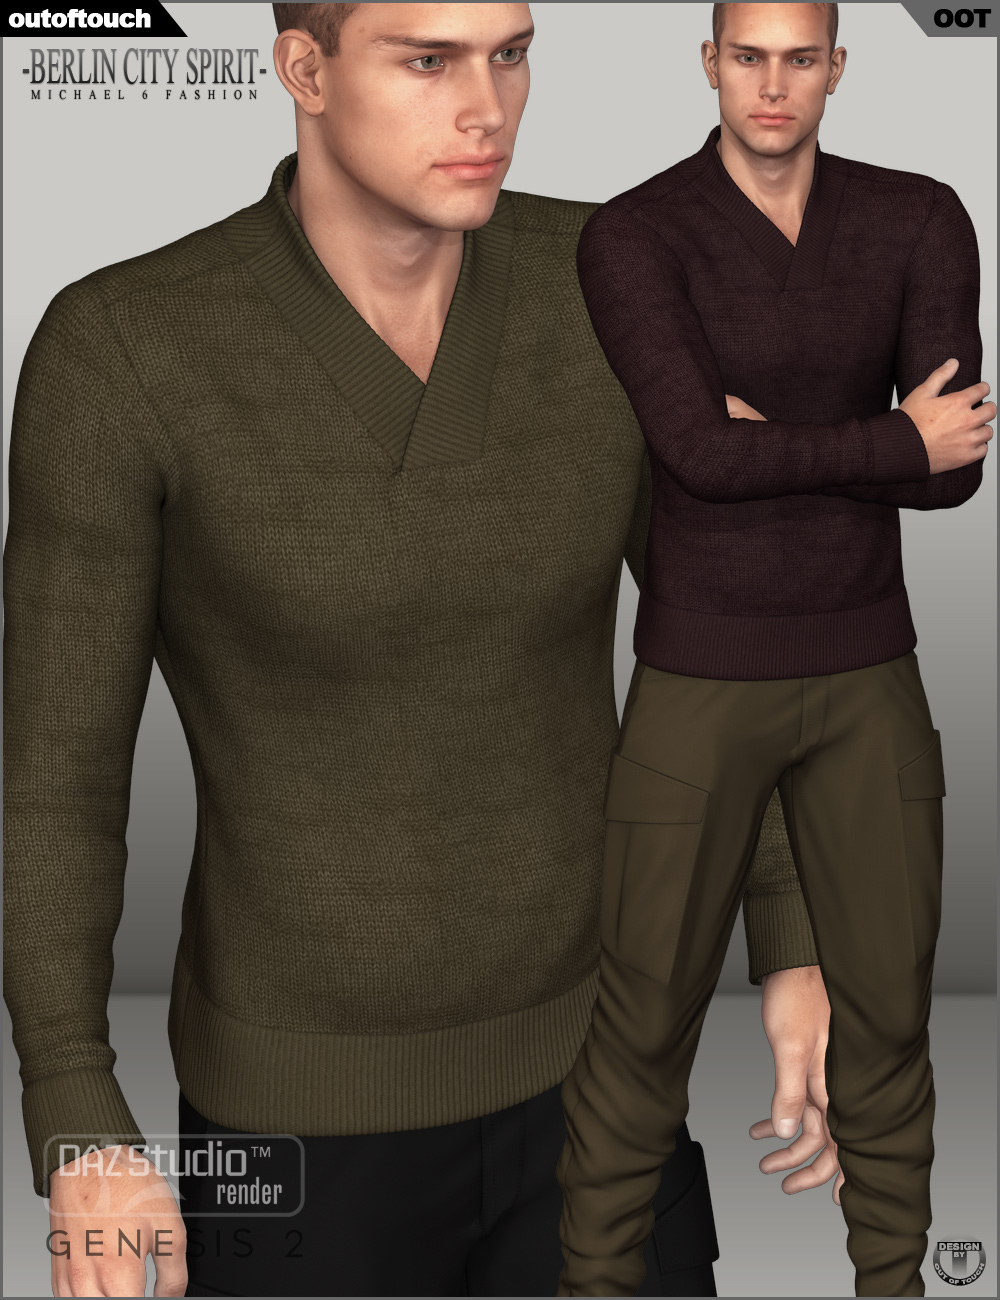 Berlin City Spirit Fashion for Genesis 2 Male(s) by: outoftouch, 3D Models by Daz 3D